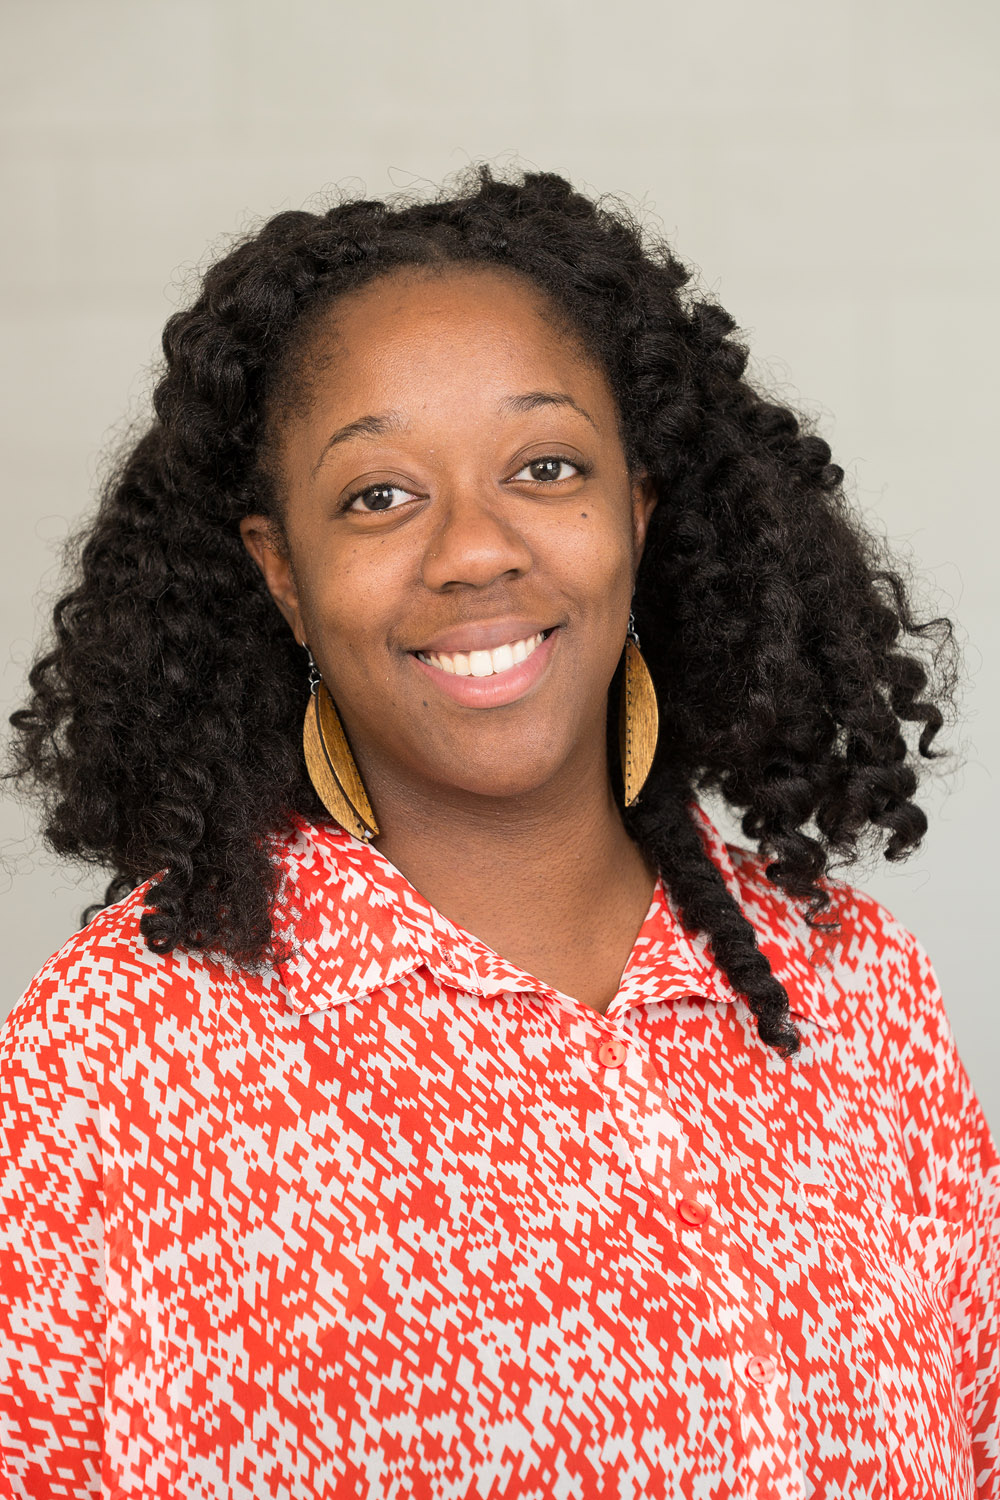 Dione Smith      Mrs. Smith is a 2012 graduate of Mercer University where she studied Elementary Education. She began her teaching career in Atlanta Public Schools where she taught fourth grade. Her favorite part of teaching is creating learning experiences that will forever impact the lives of scholars